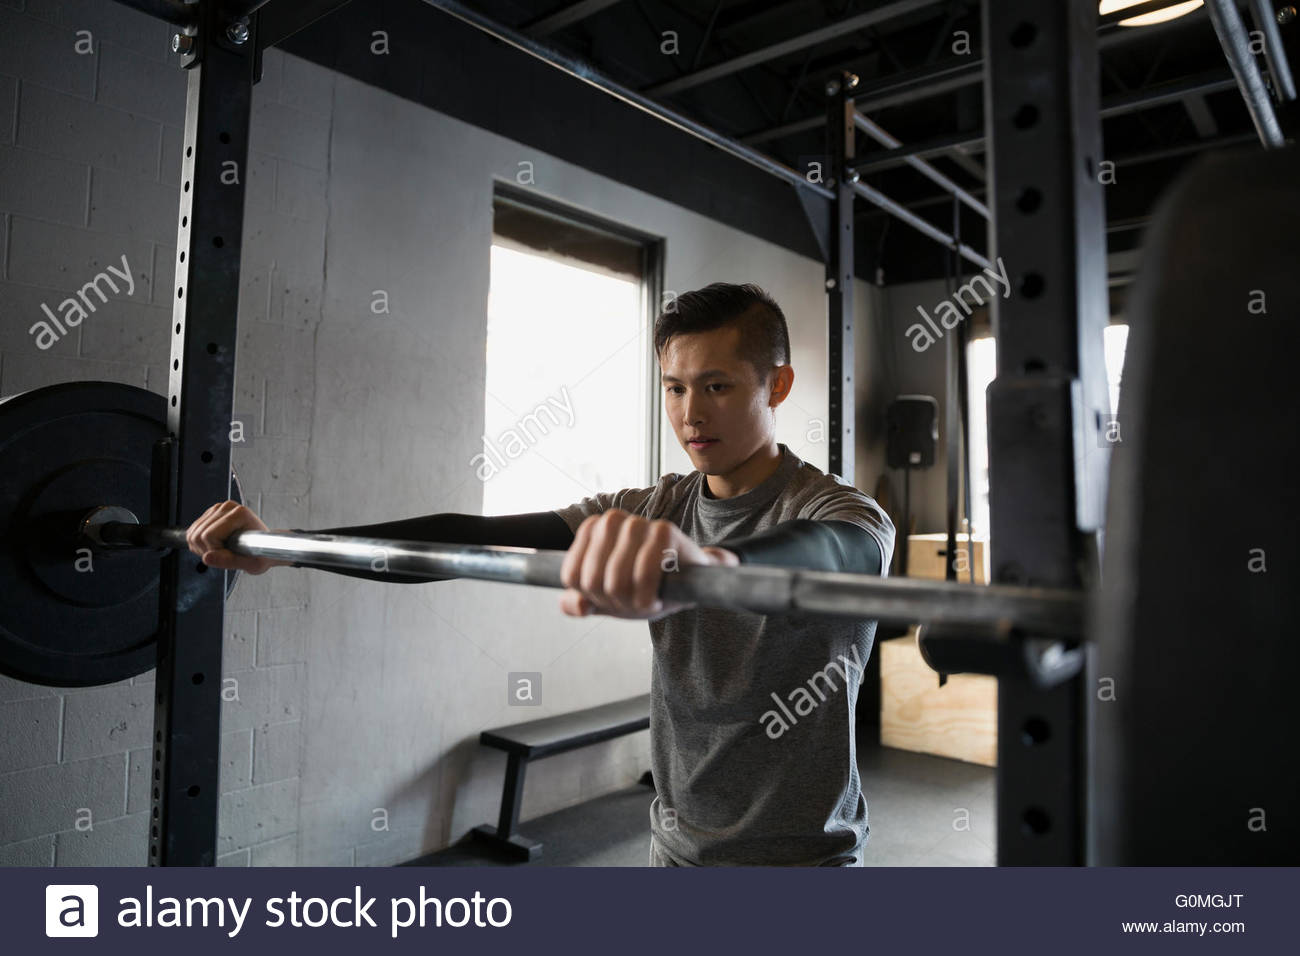 Man at barbell rack at gym - Stock Image